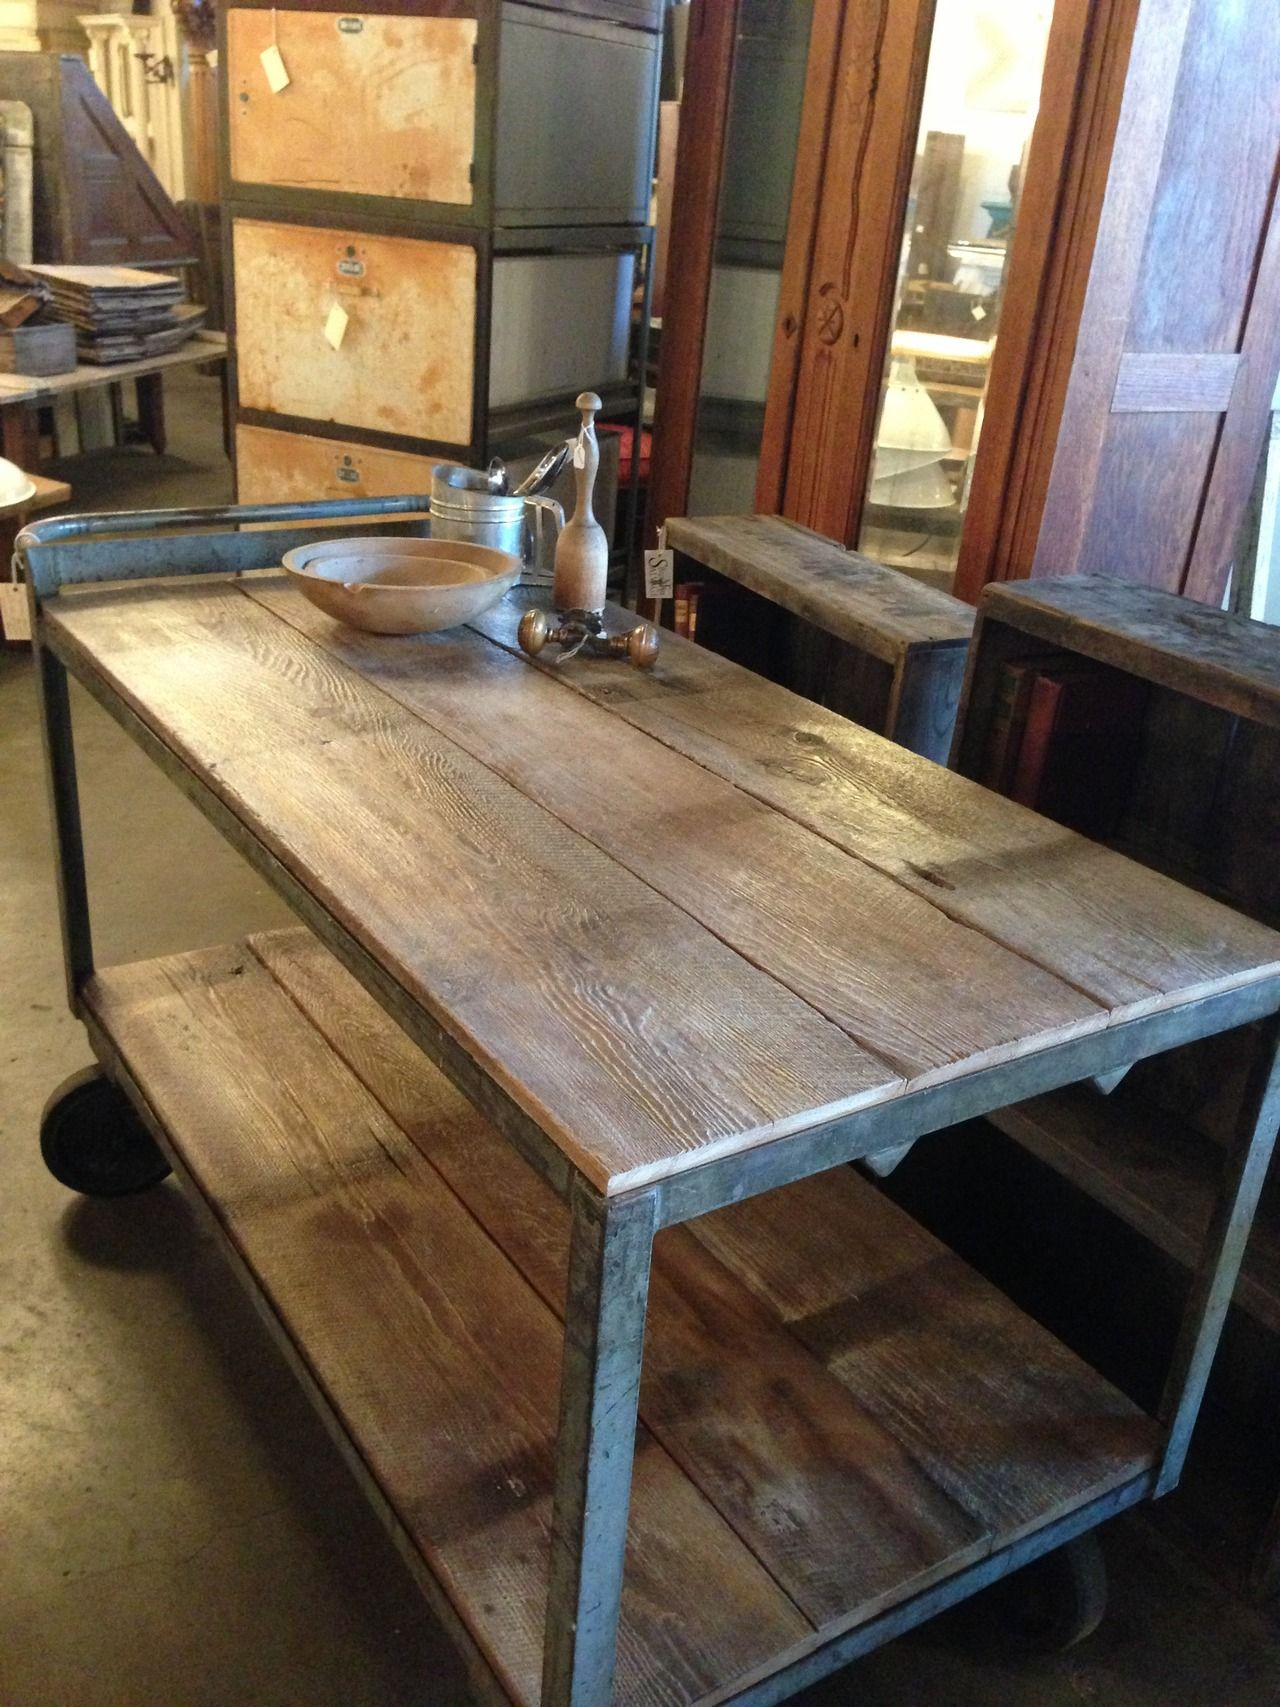 Reclaimed Barn Wood Industrial Cart Kitchen Island From Silver Fox Salvage Los Ange Reclaimed Wood Kitchen Wood Kitchen Island Reclaimed Wood Kitchen Island